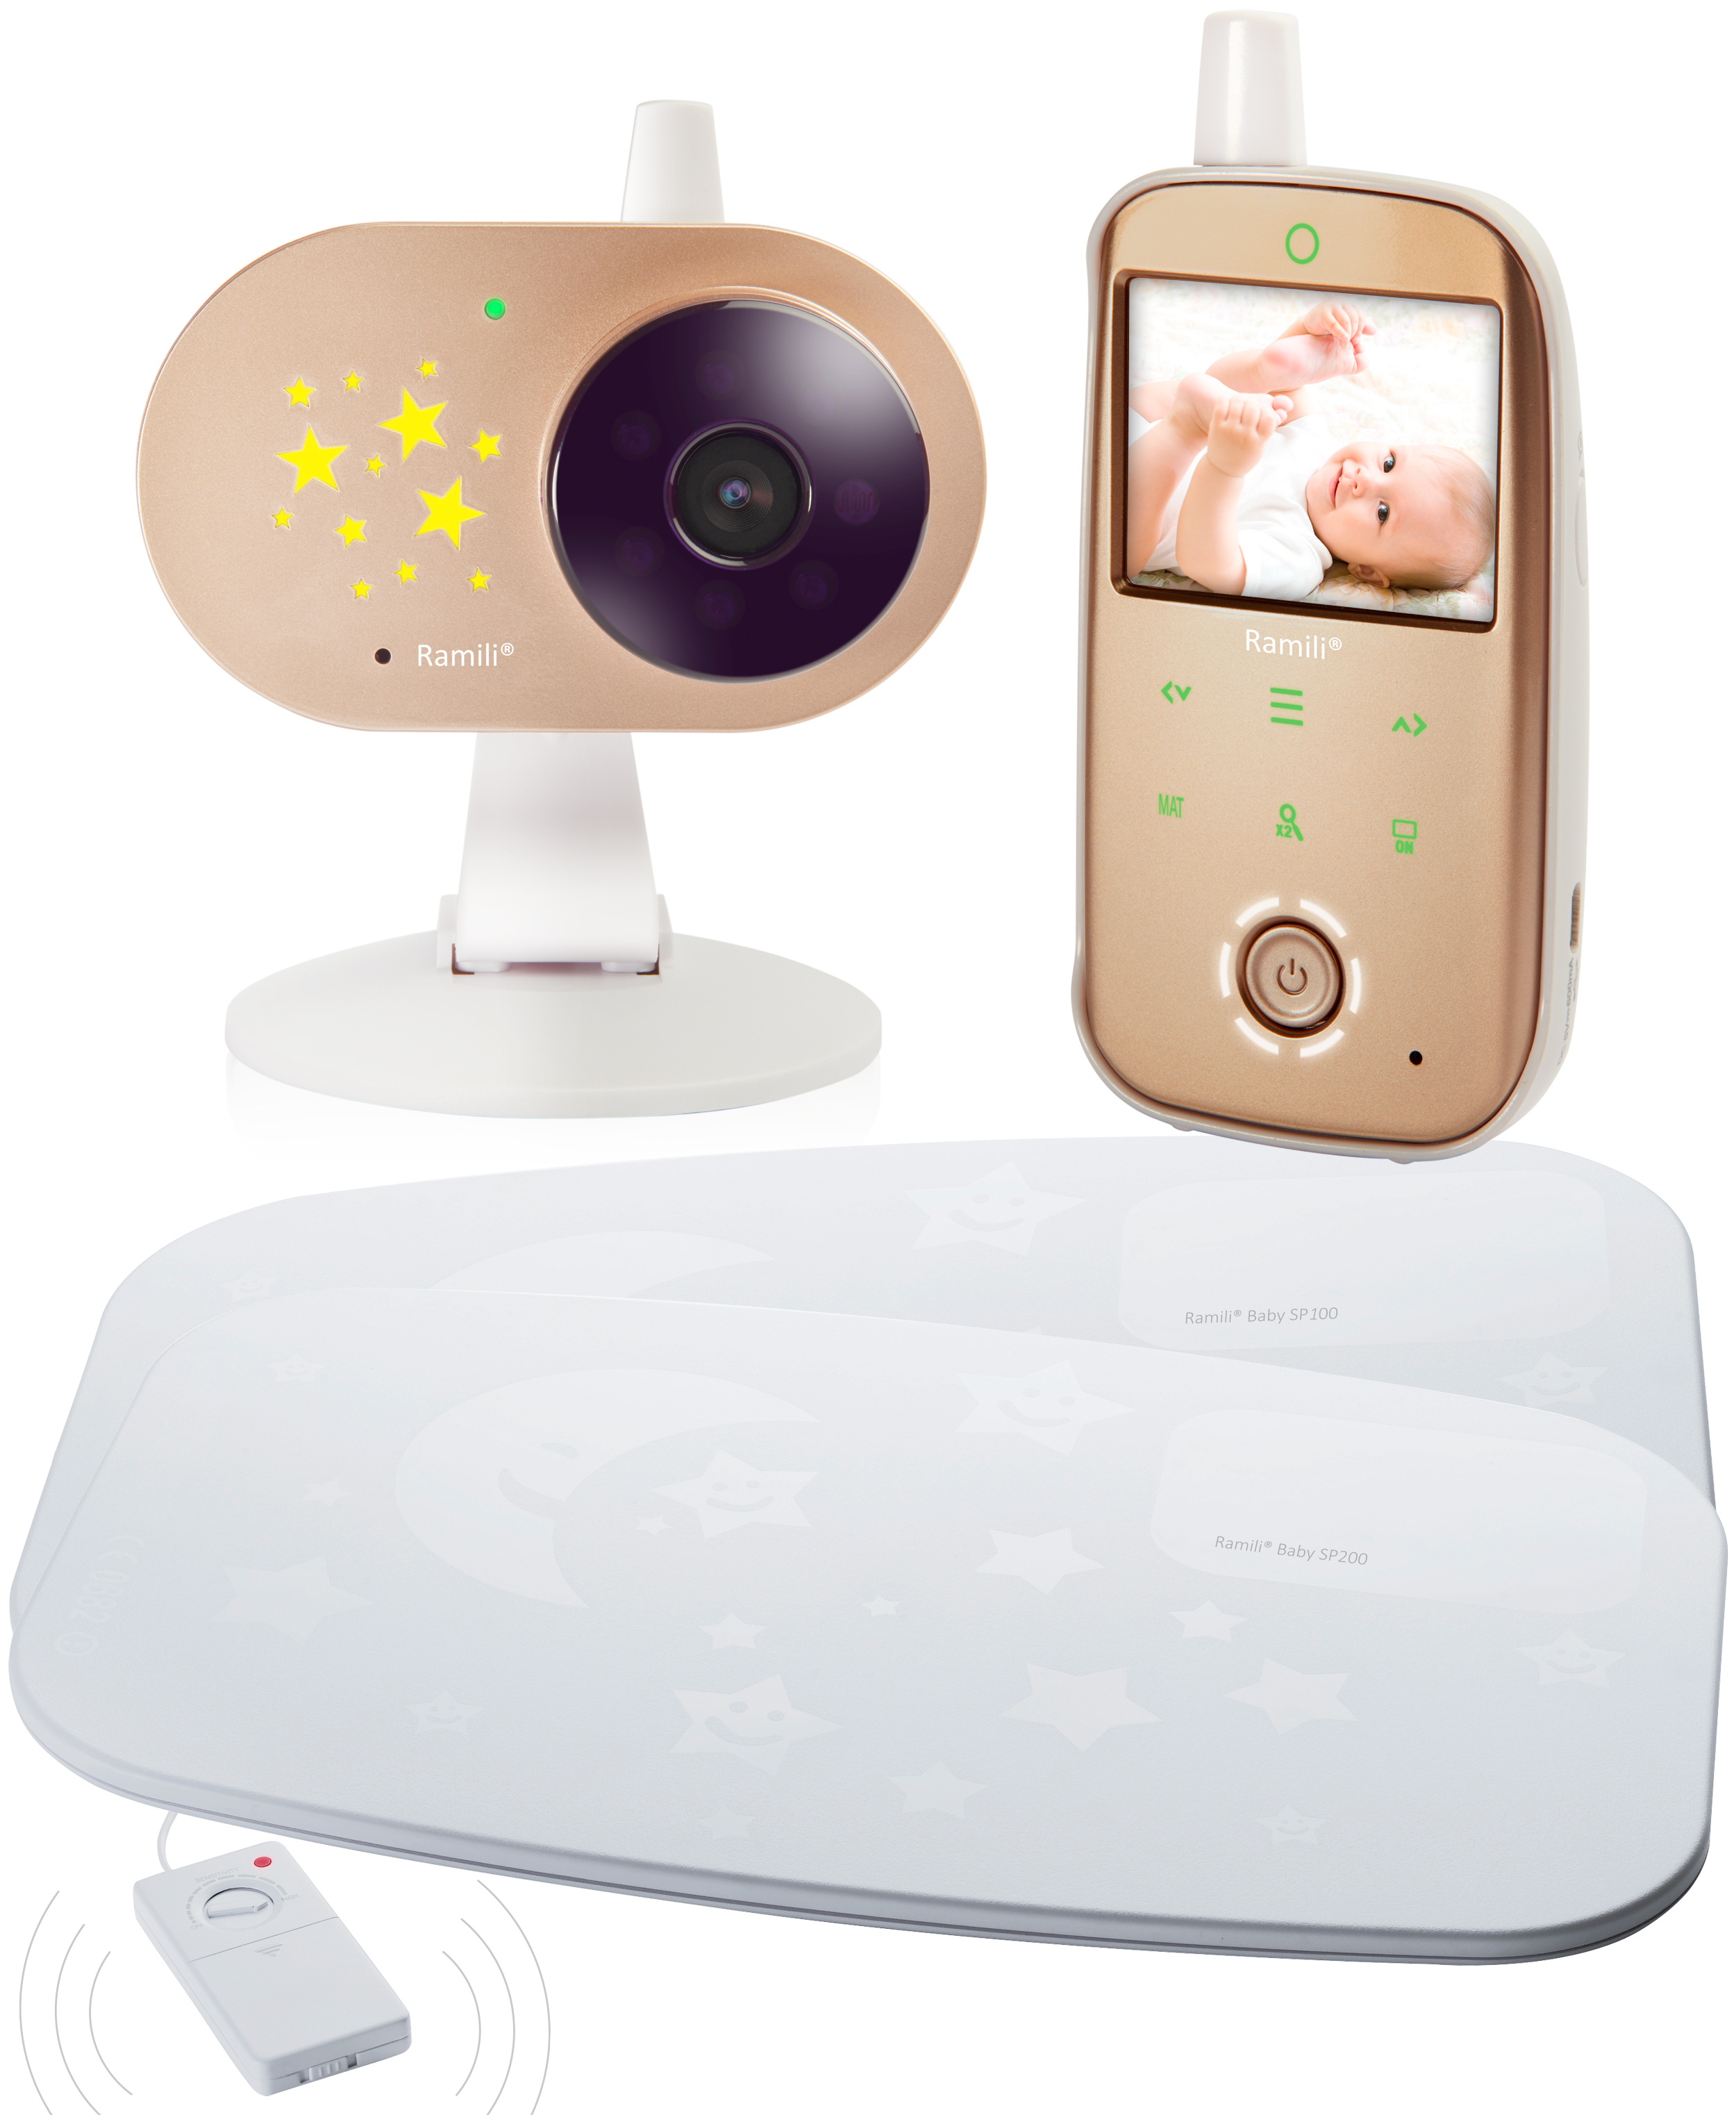 ramili group ramili baby video monitor rv1200. Black Bedroom Furniture Sets. Home Design Ideas